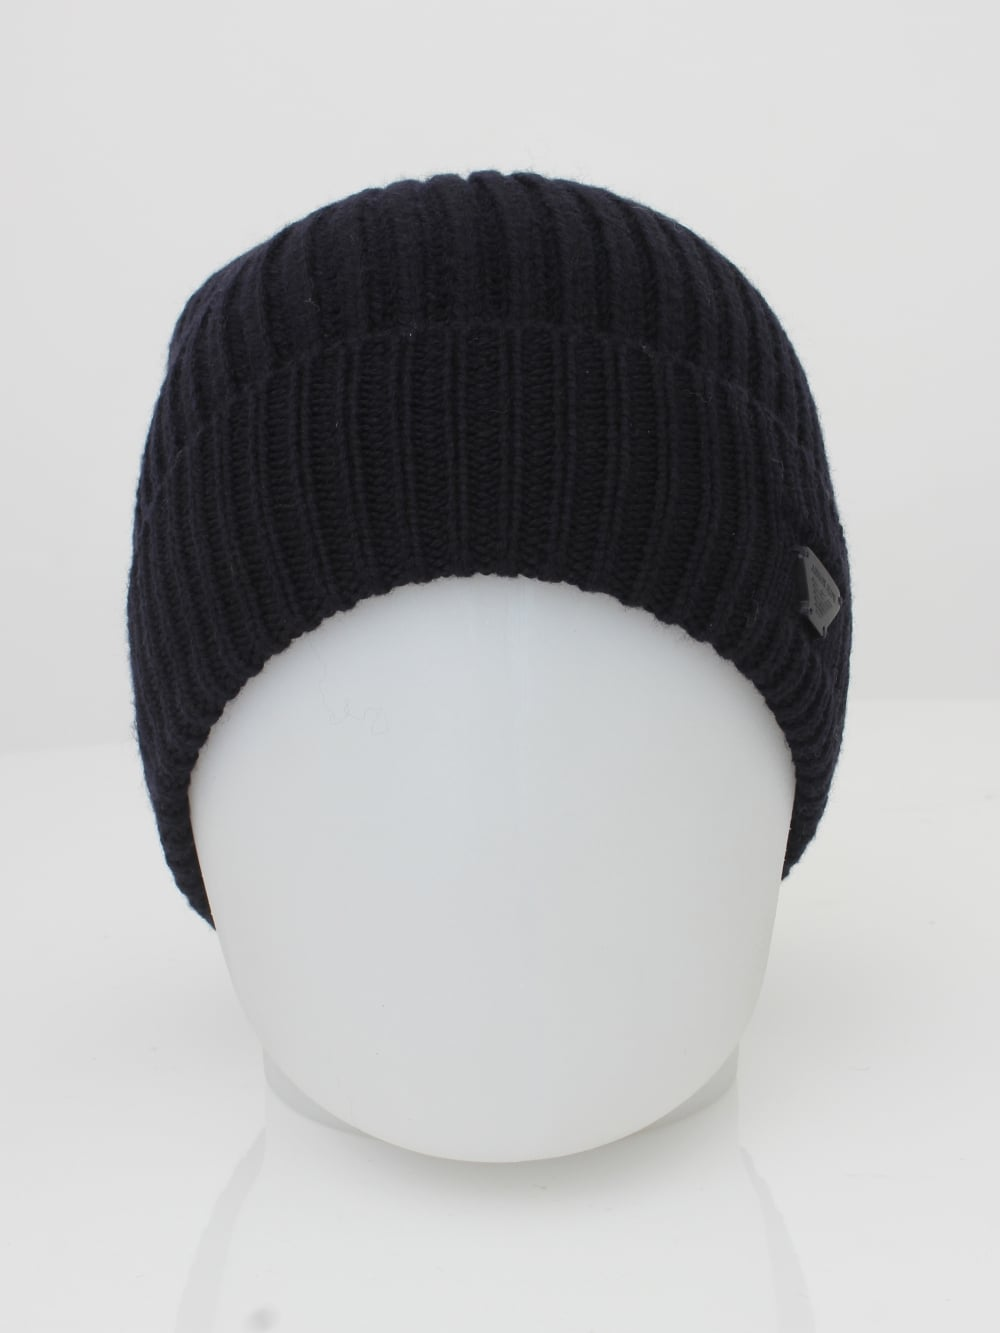 Armani Jeans Ribbed Logo Beanie in Black - Northern Threads f7e6df31b20